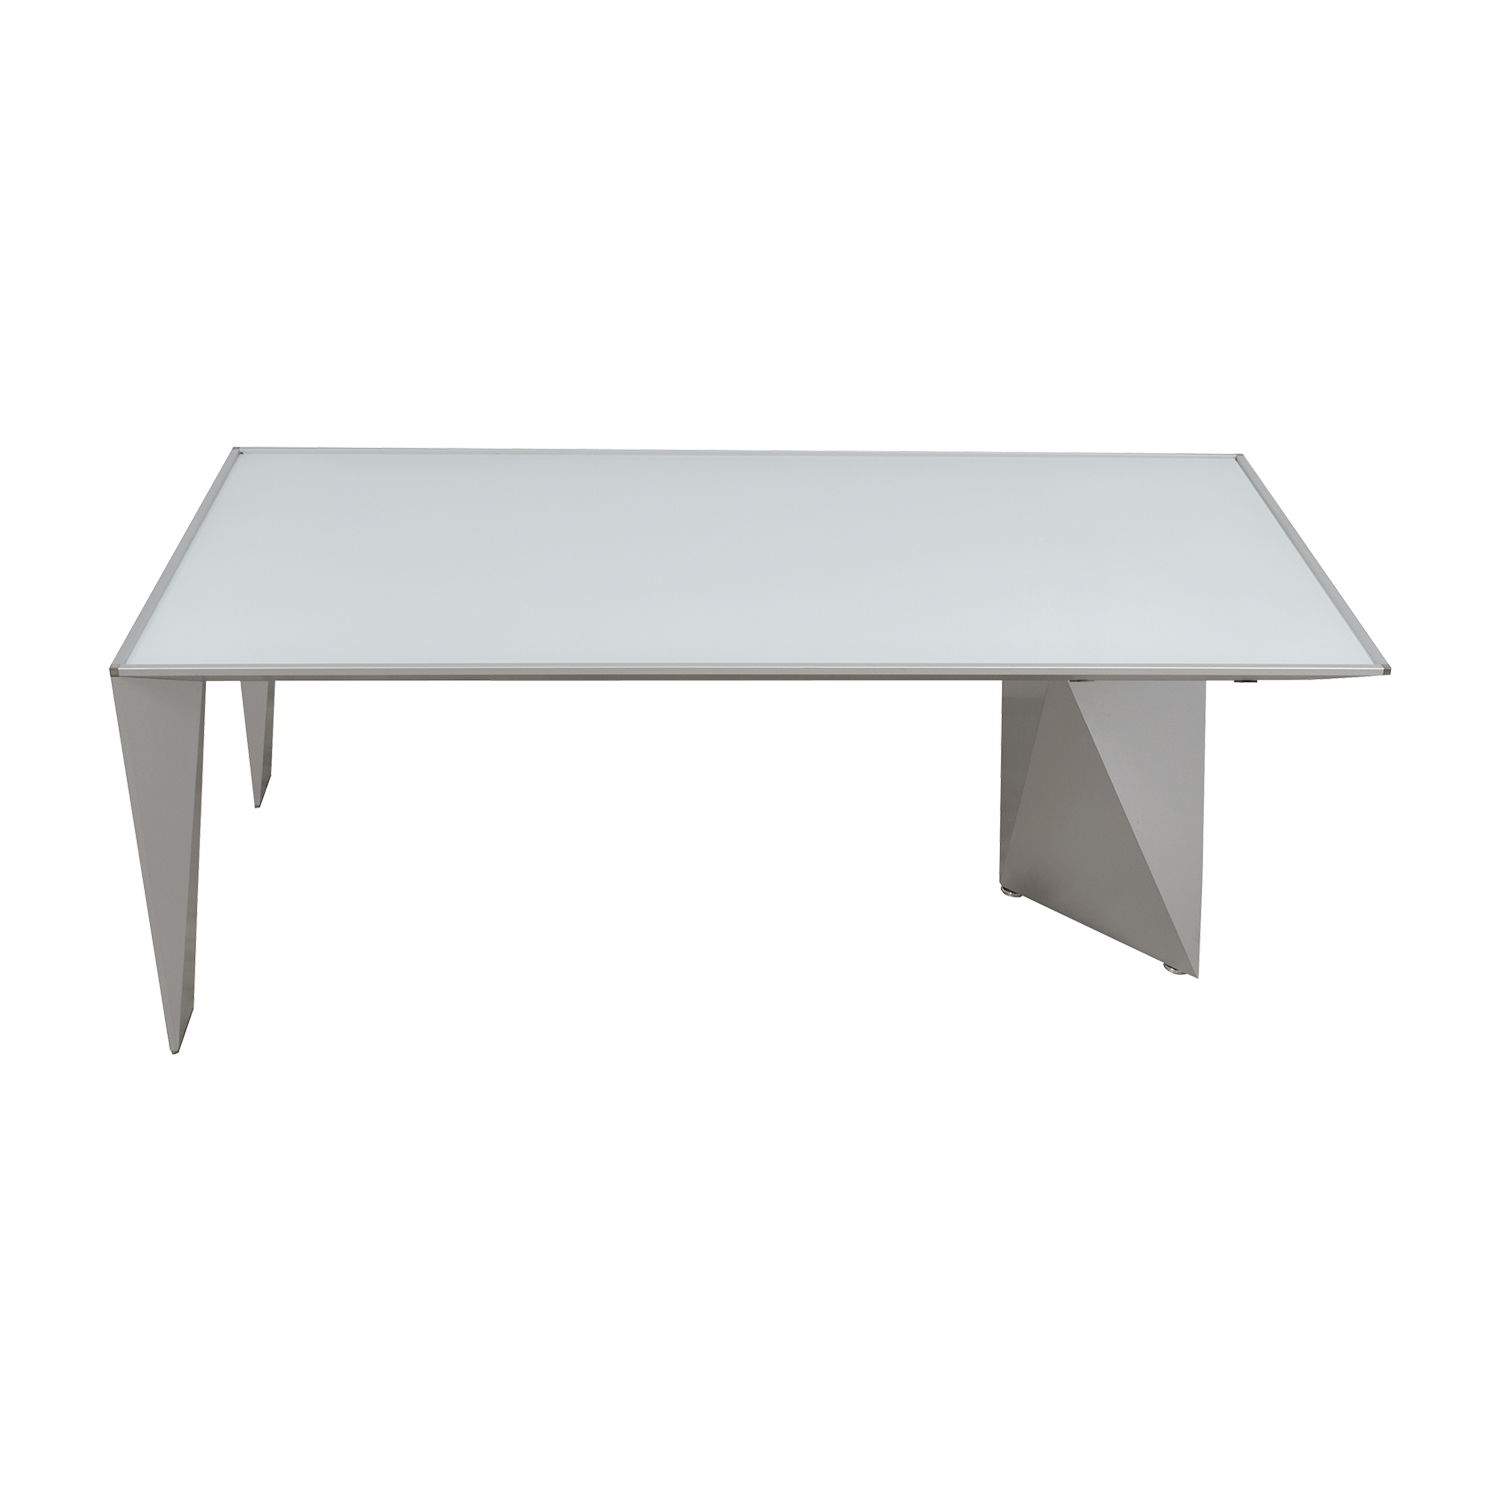 Alea Eracle White Glass and Metal Frame Desk or Table Alea Eracle